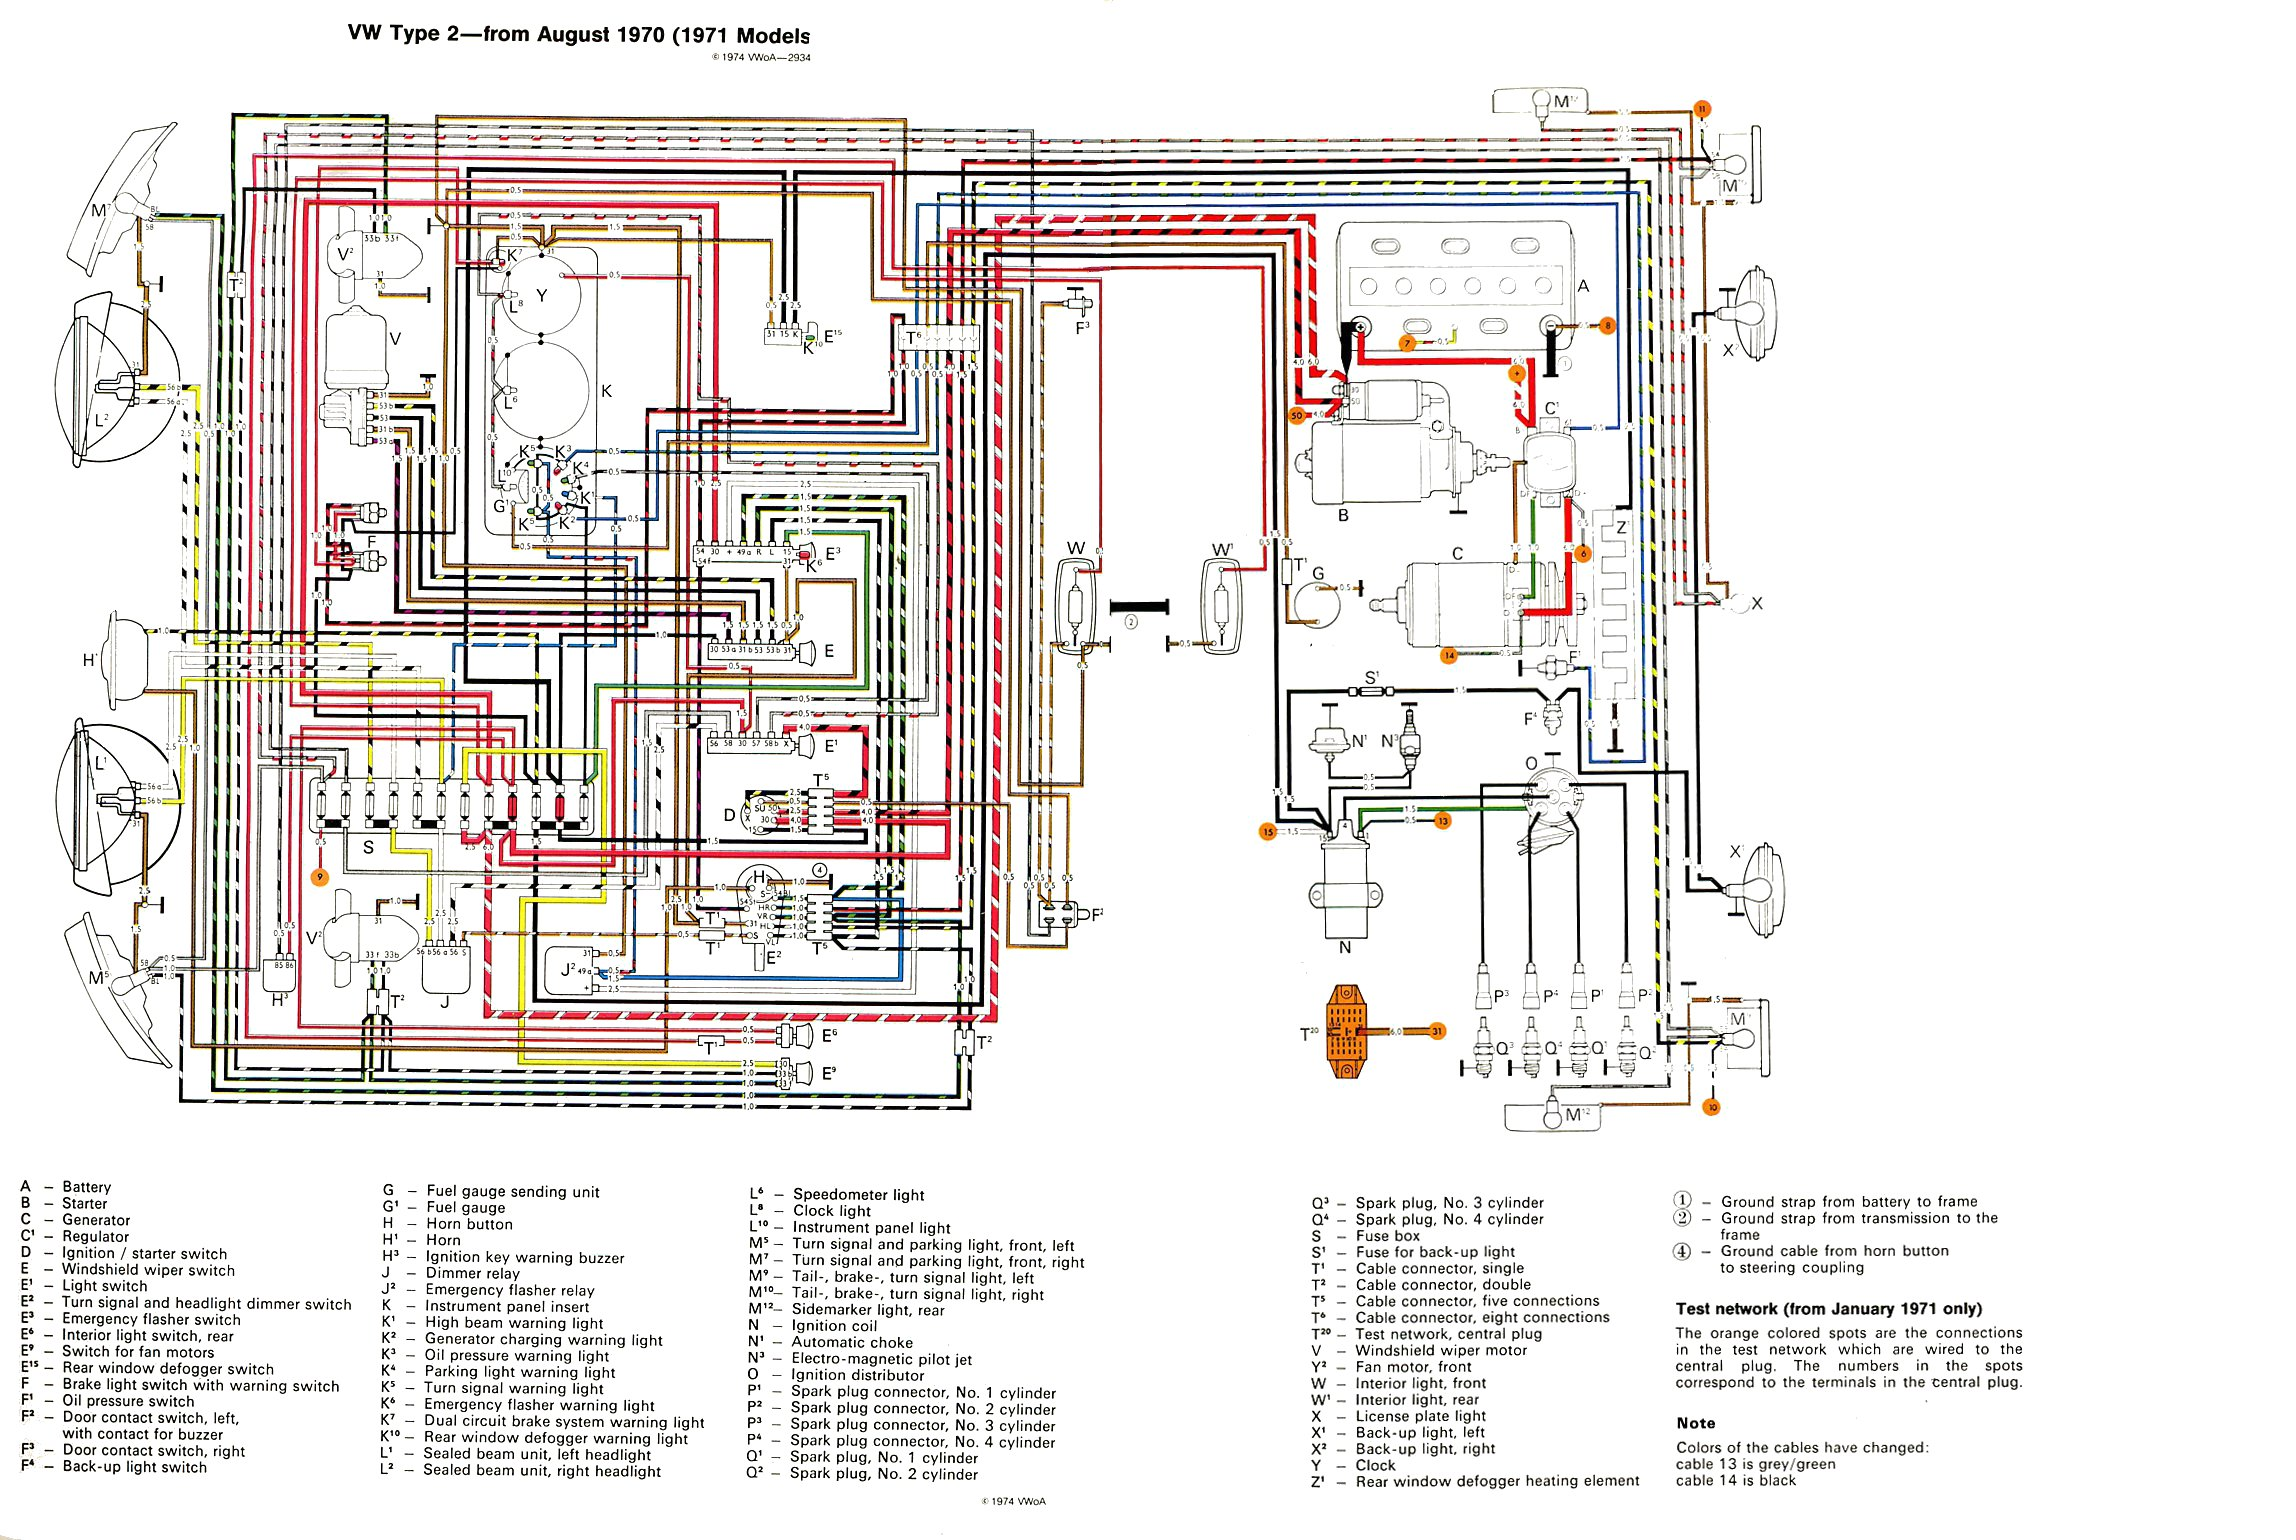 baybus_71 thesamba com type 2 wiring diagrams fuse box wiring diagram at eliteediting.co